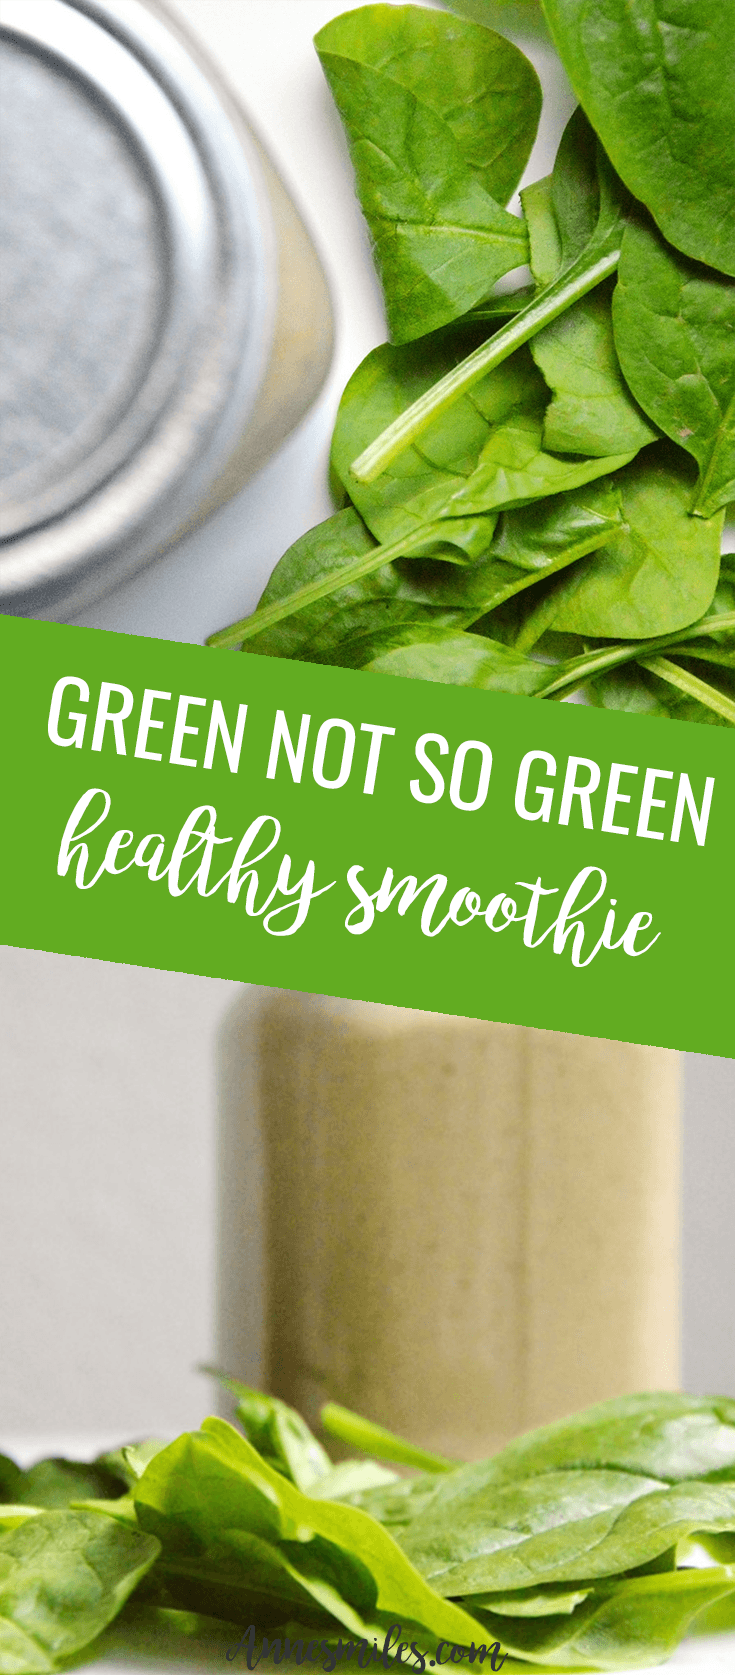 Bam! Smoothies can be healthy and full of greens without looking green. And they still taste amazing. Here's a quick & healthy recipe || Click through to read more, or repin to save for later!